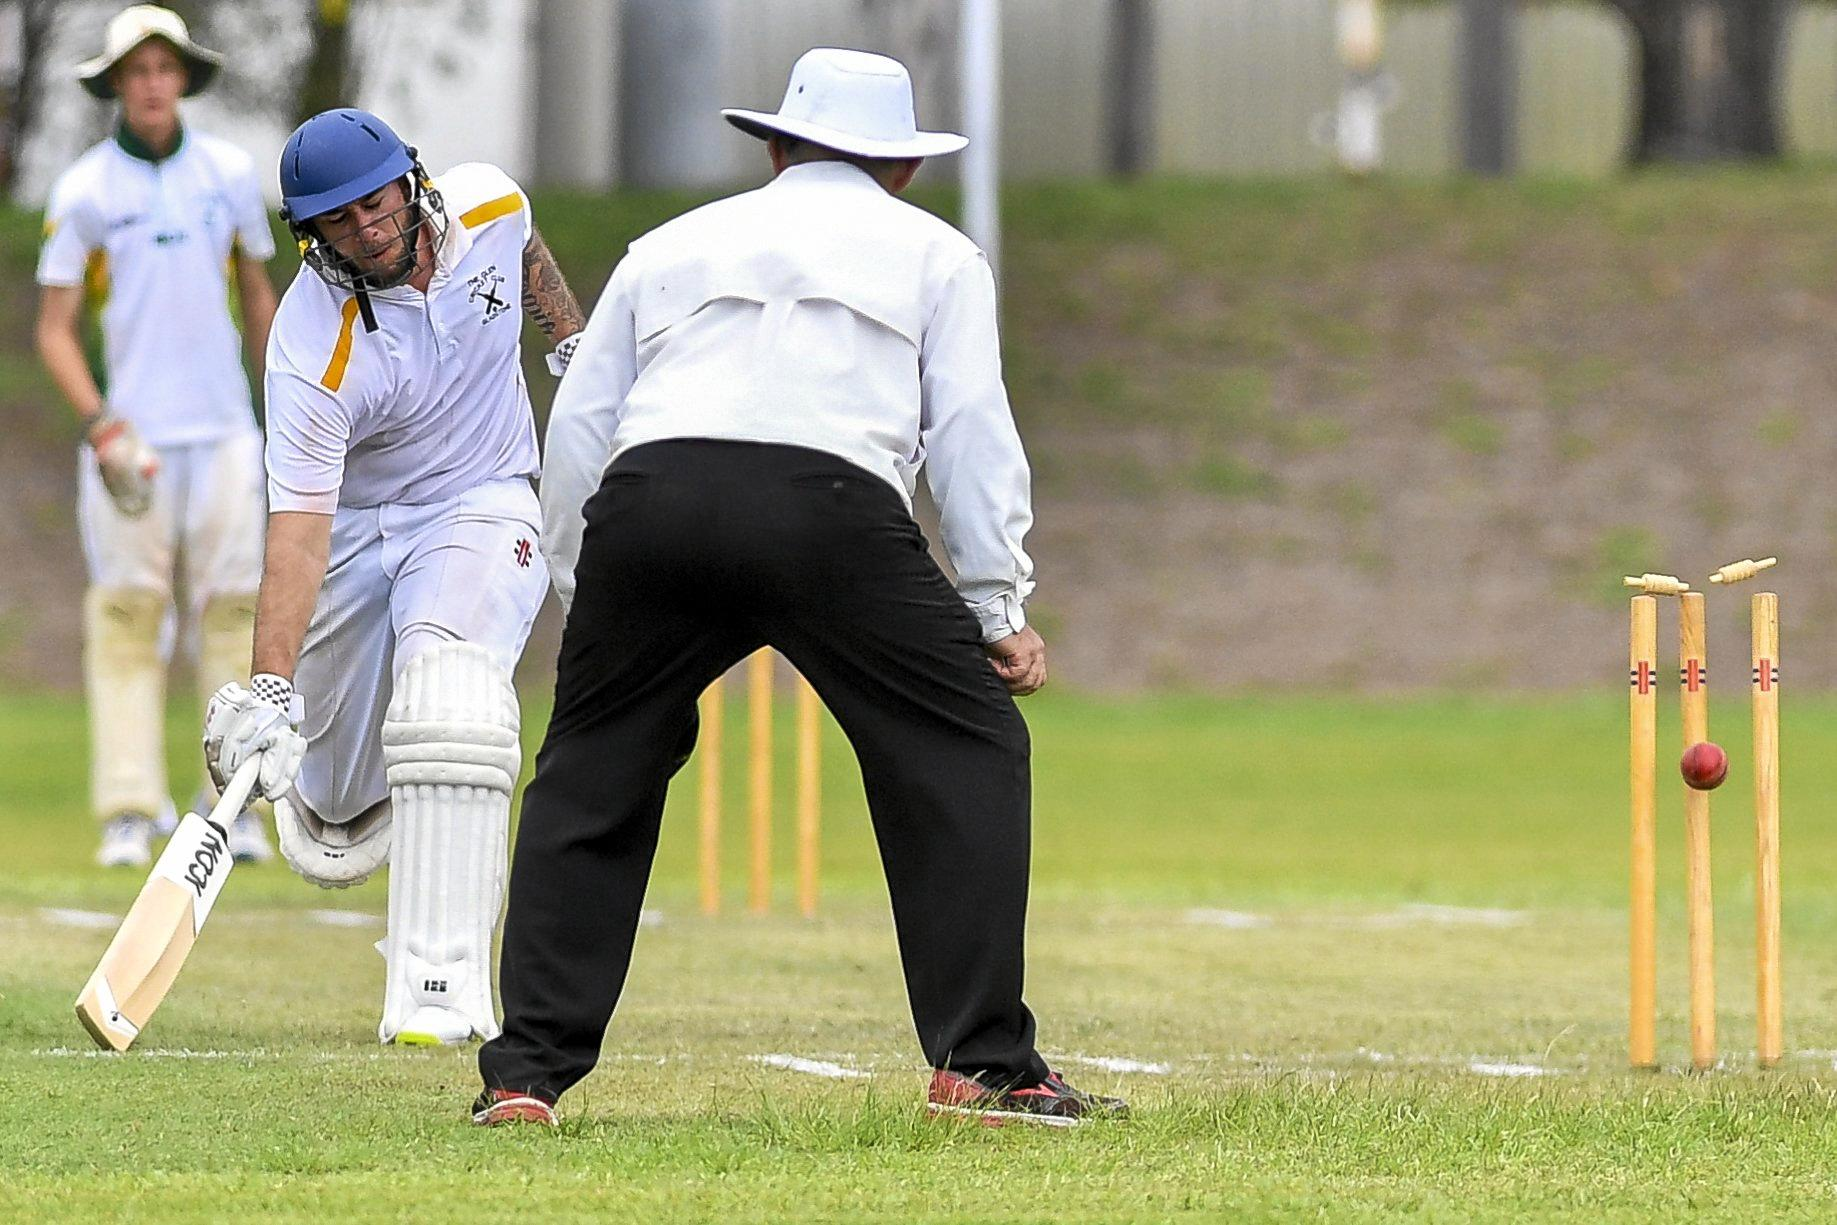 The Glen's Glen Stanton-Cook is given not out after an attempted run out.